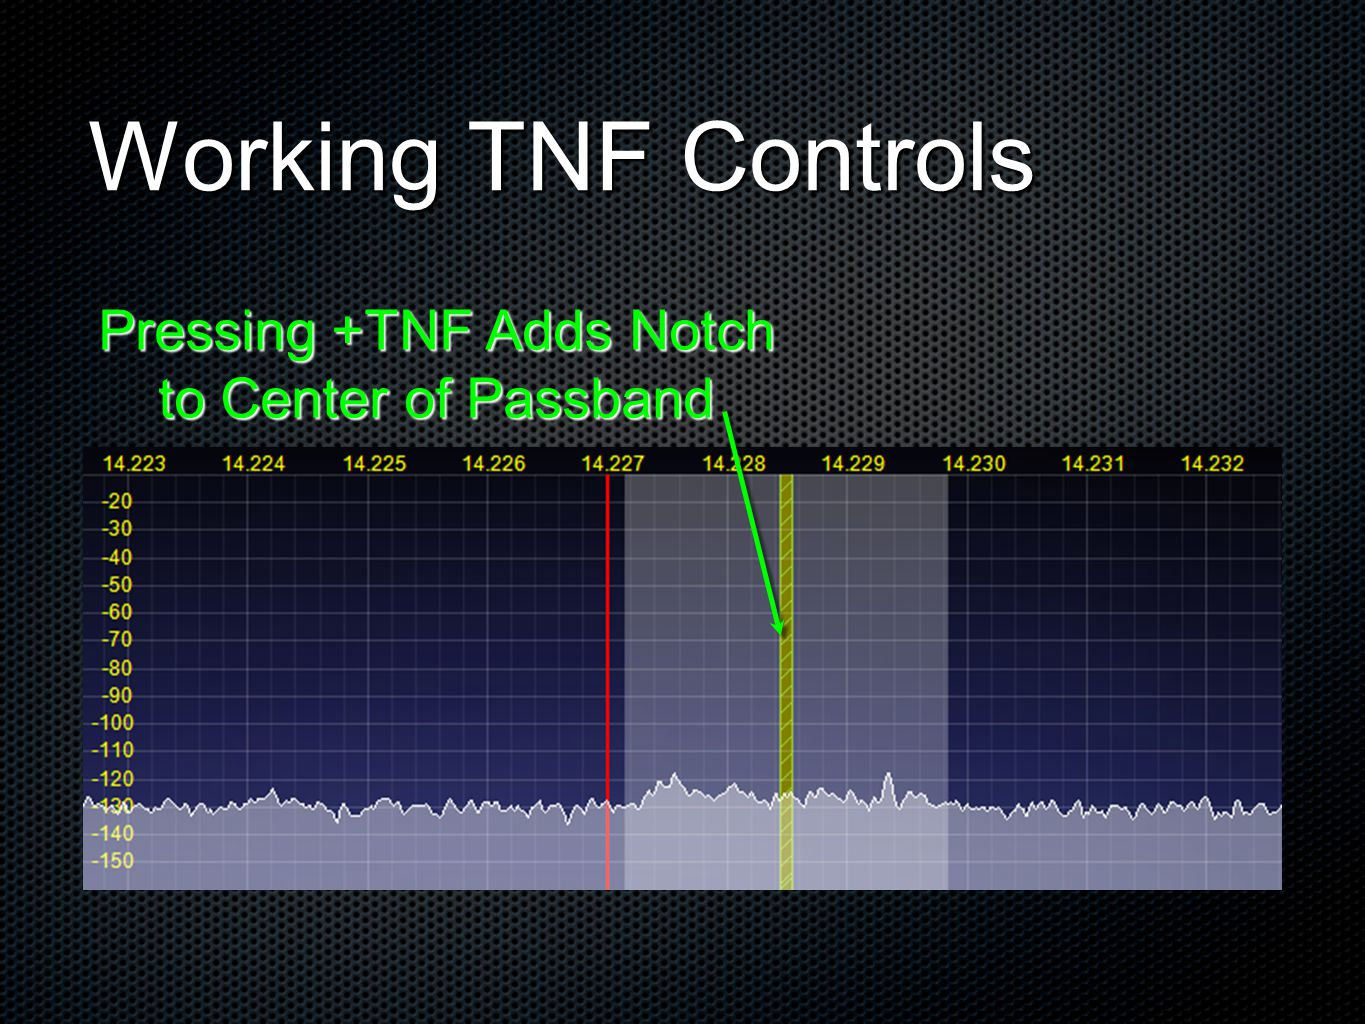 Working TNF Controls Pressing +TNF Adds Notch to Center of Passband